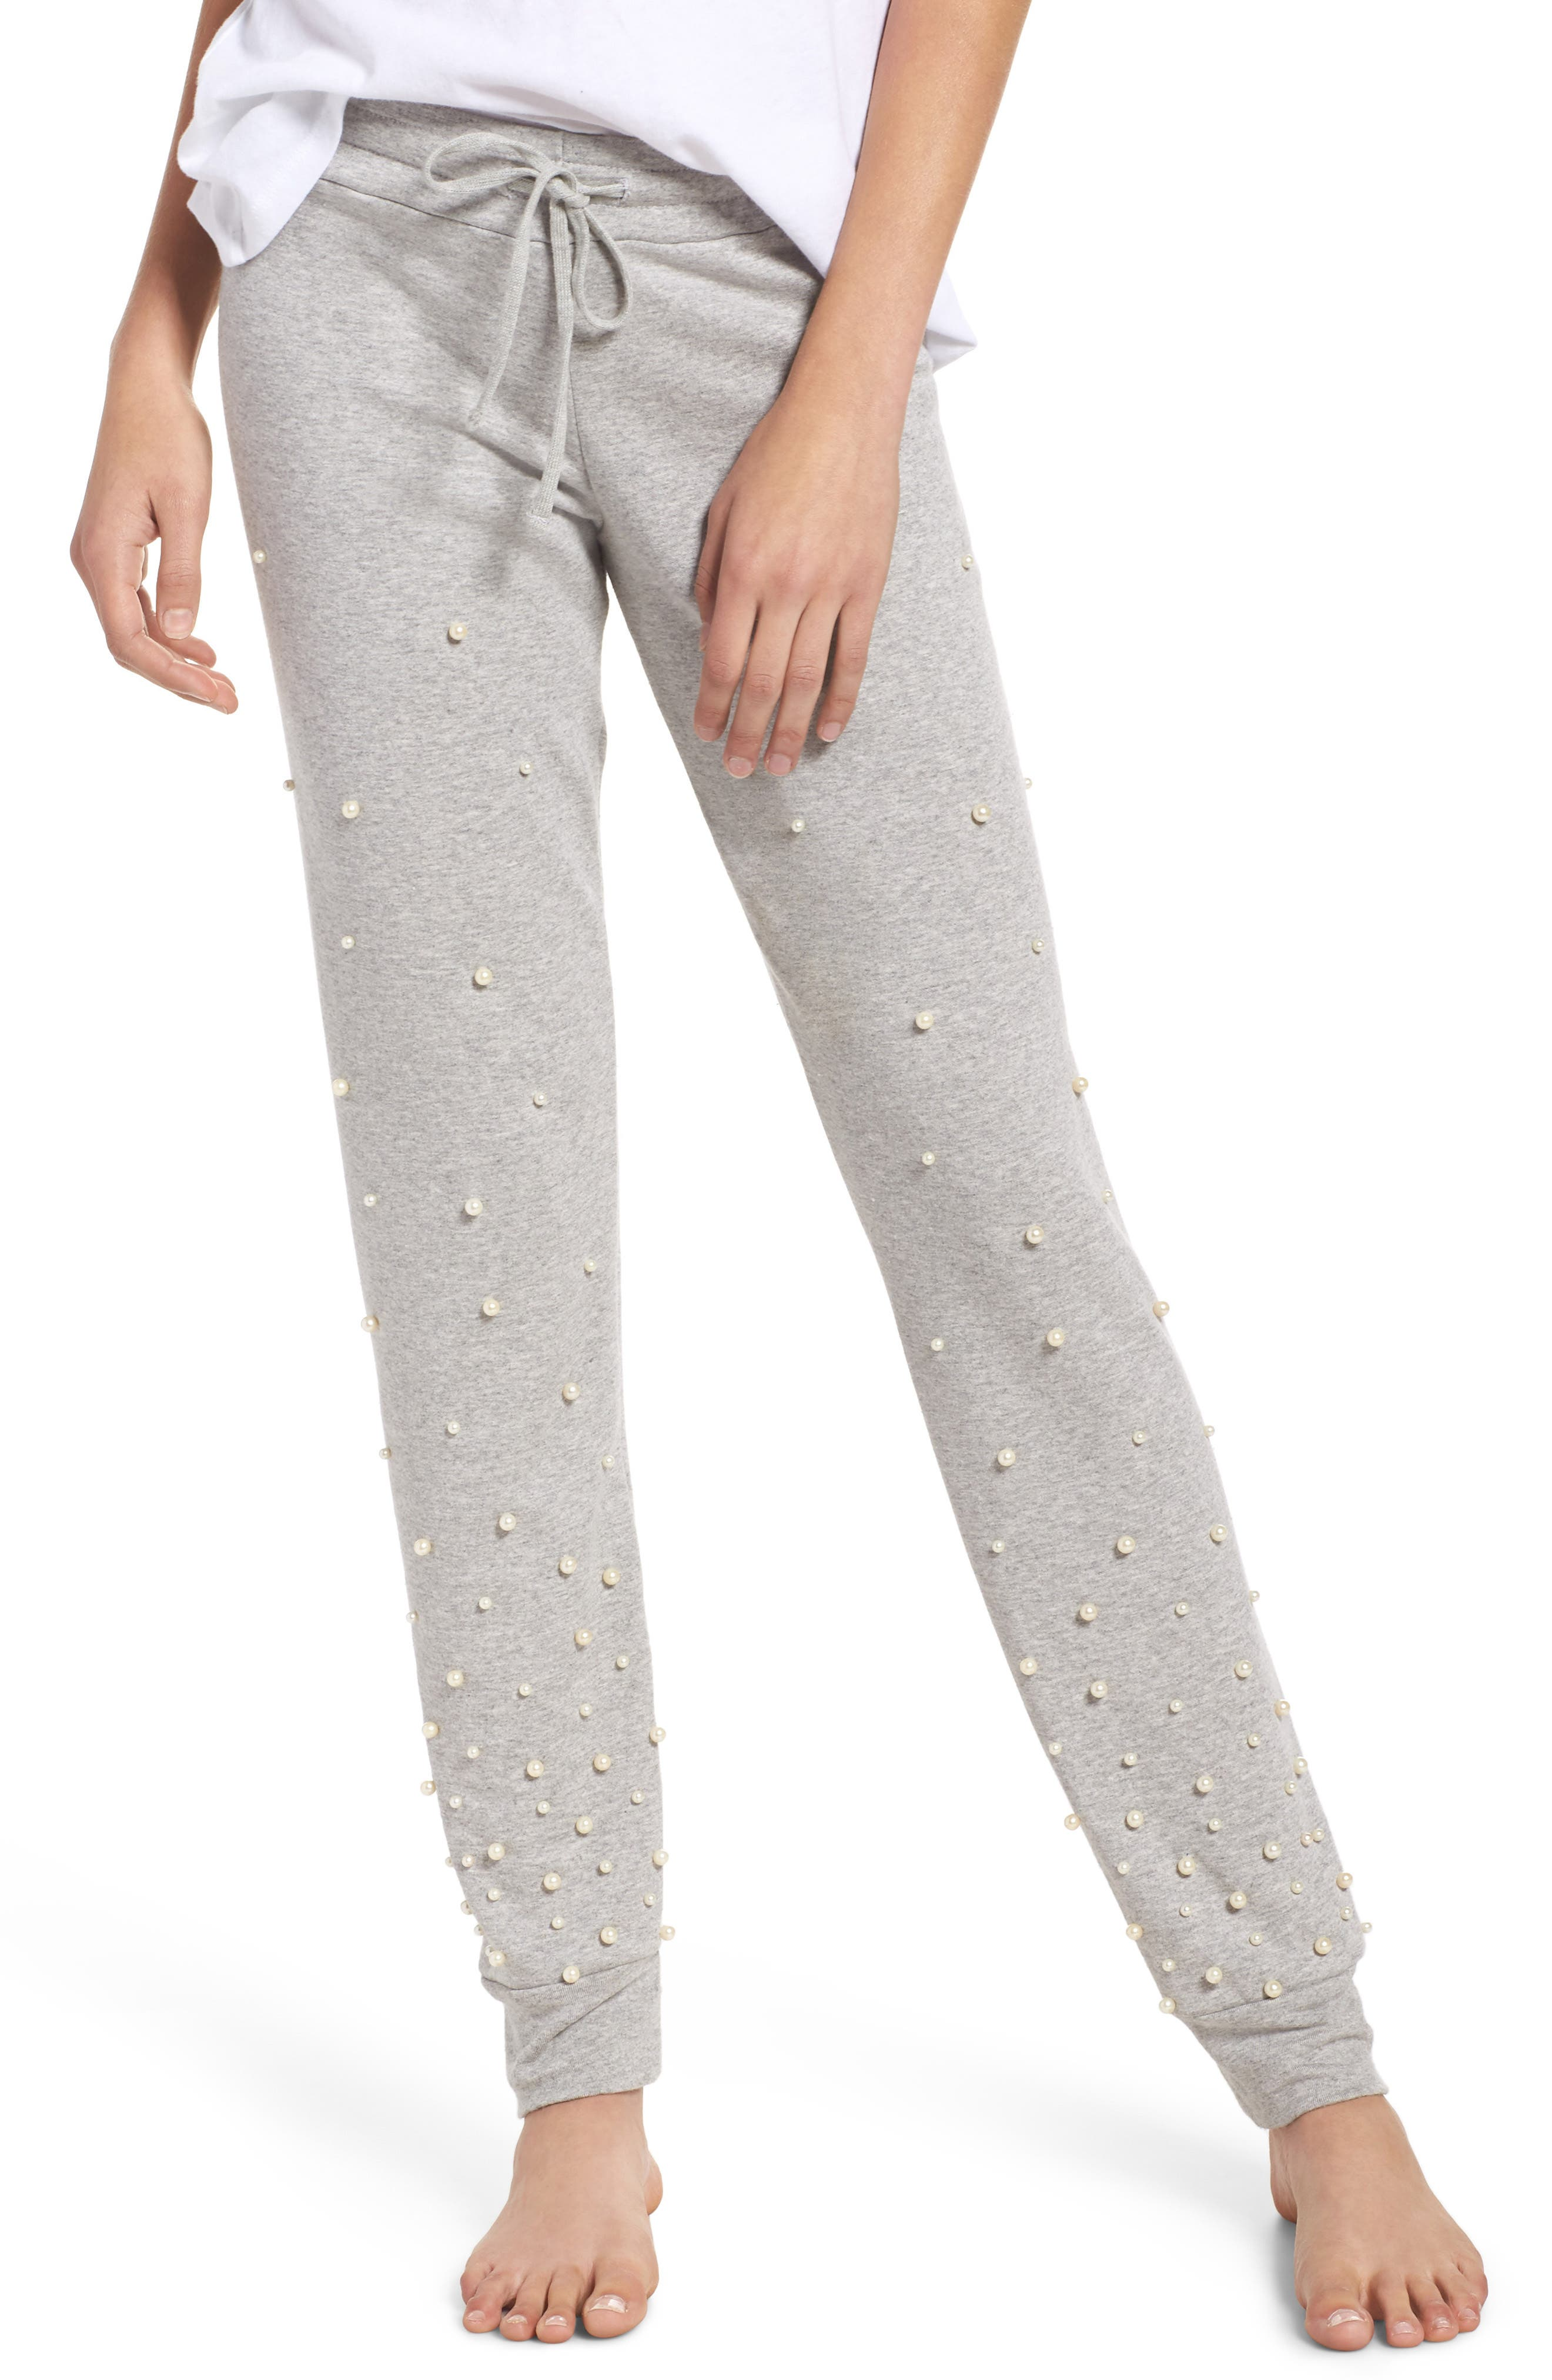 Price Imitation Pearl Embellished Lounge Pants,                             Main thumbnail 1, color,                             Heather Grey